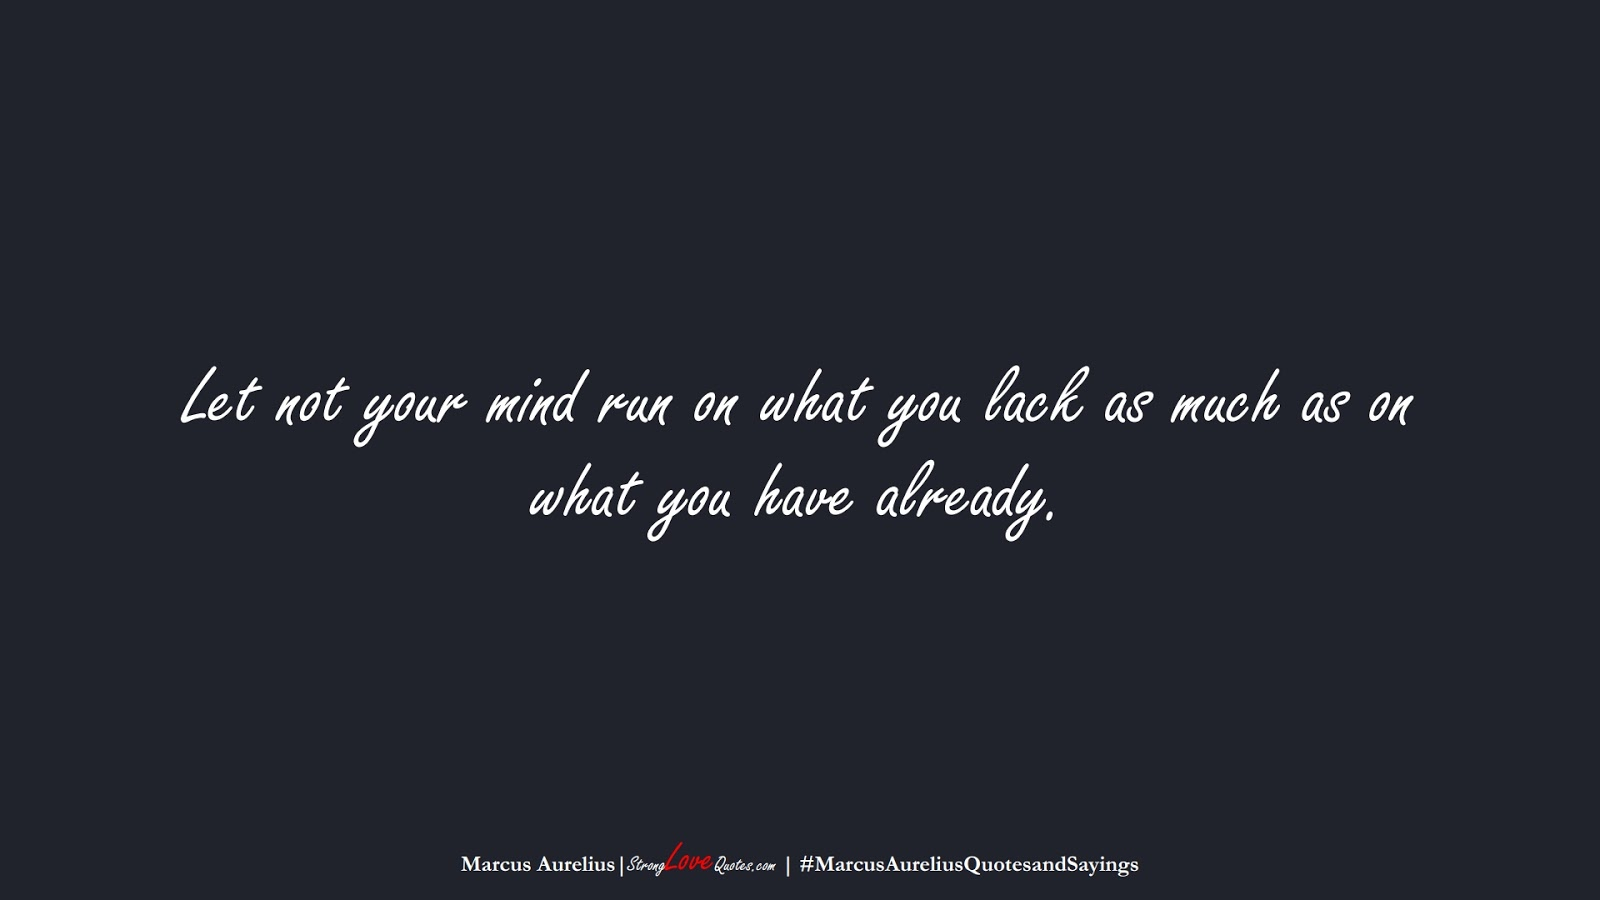 Let not your mind run on what you lack as much as on what you have already. (Marcus Aurelius);  #MarcusAureliusQuotesandSayings